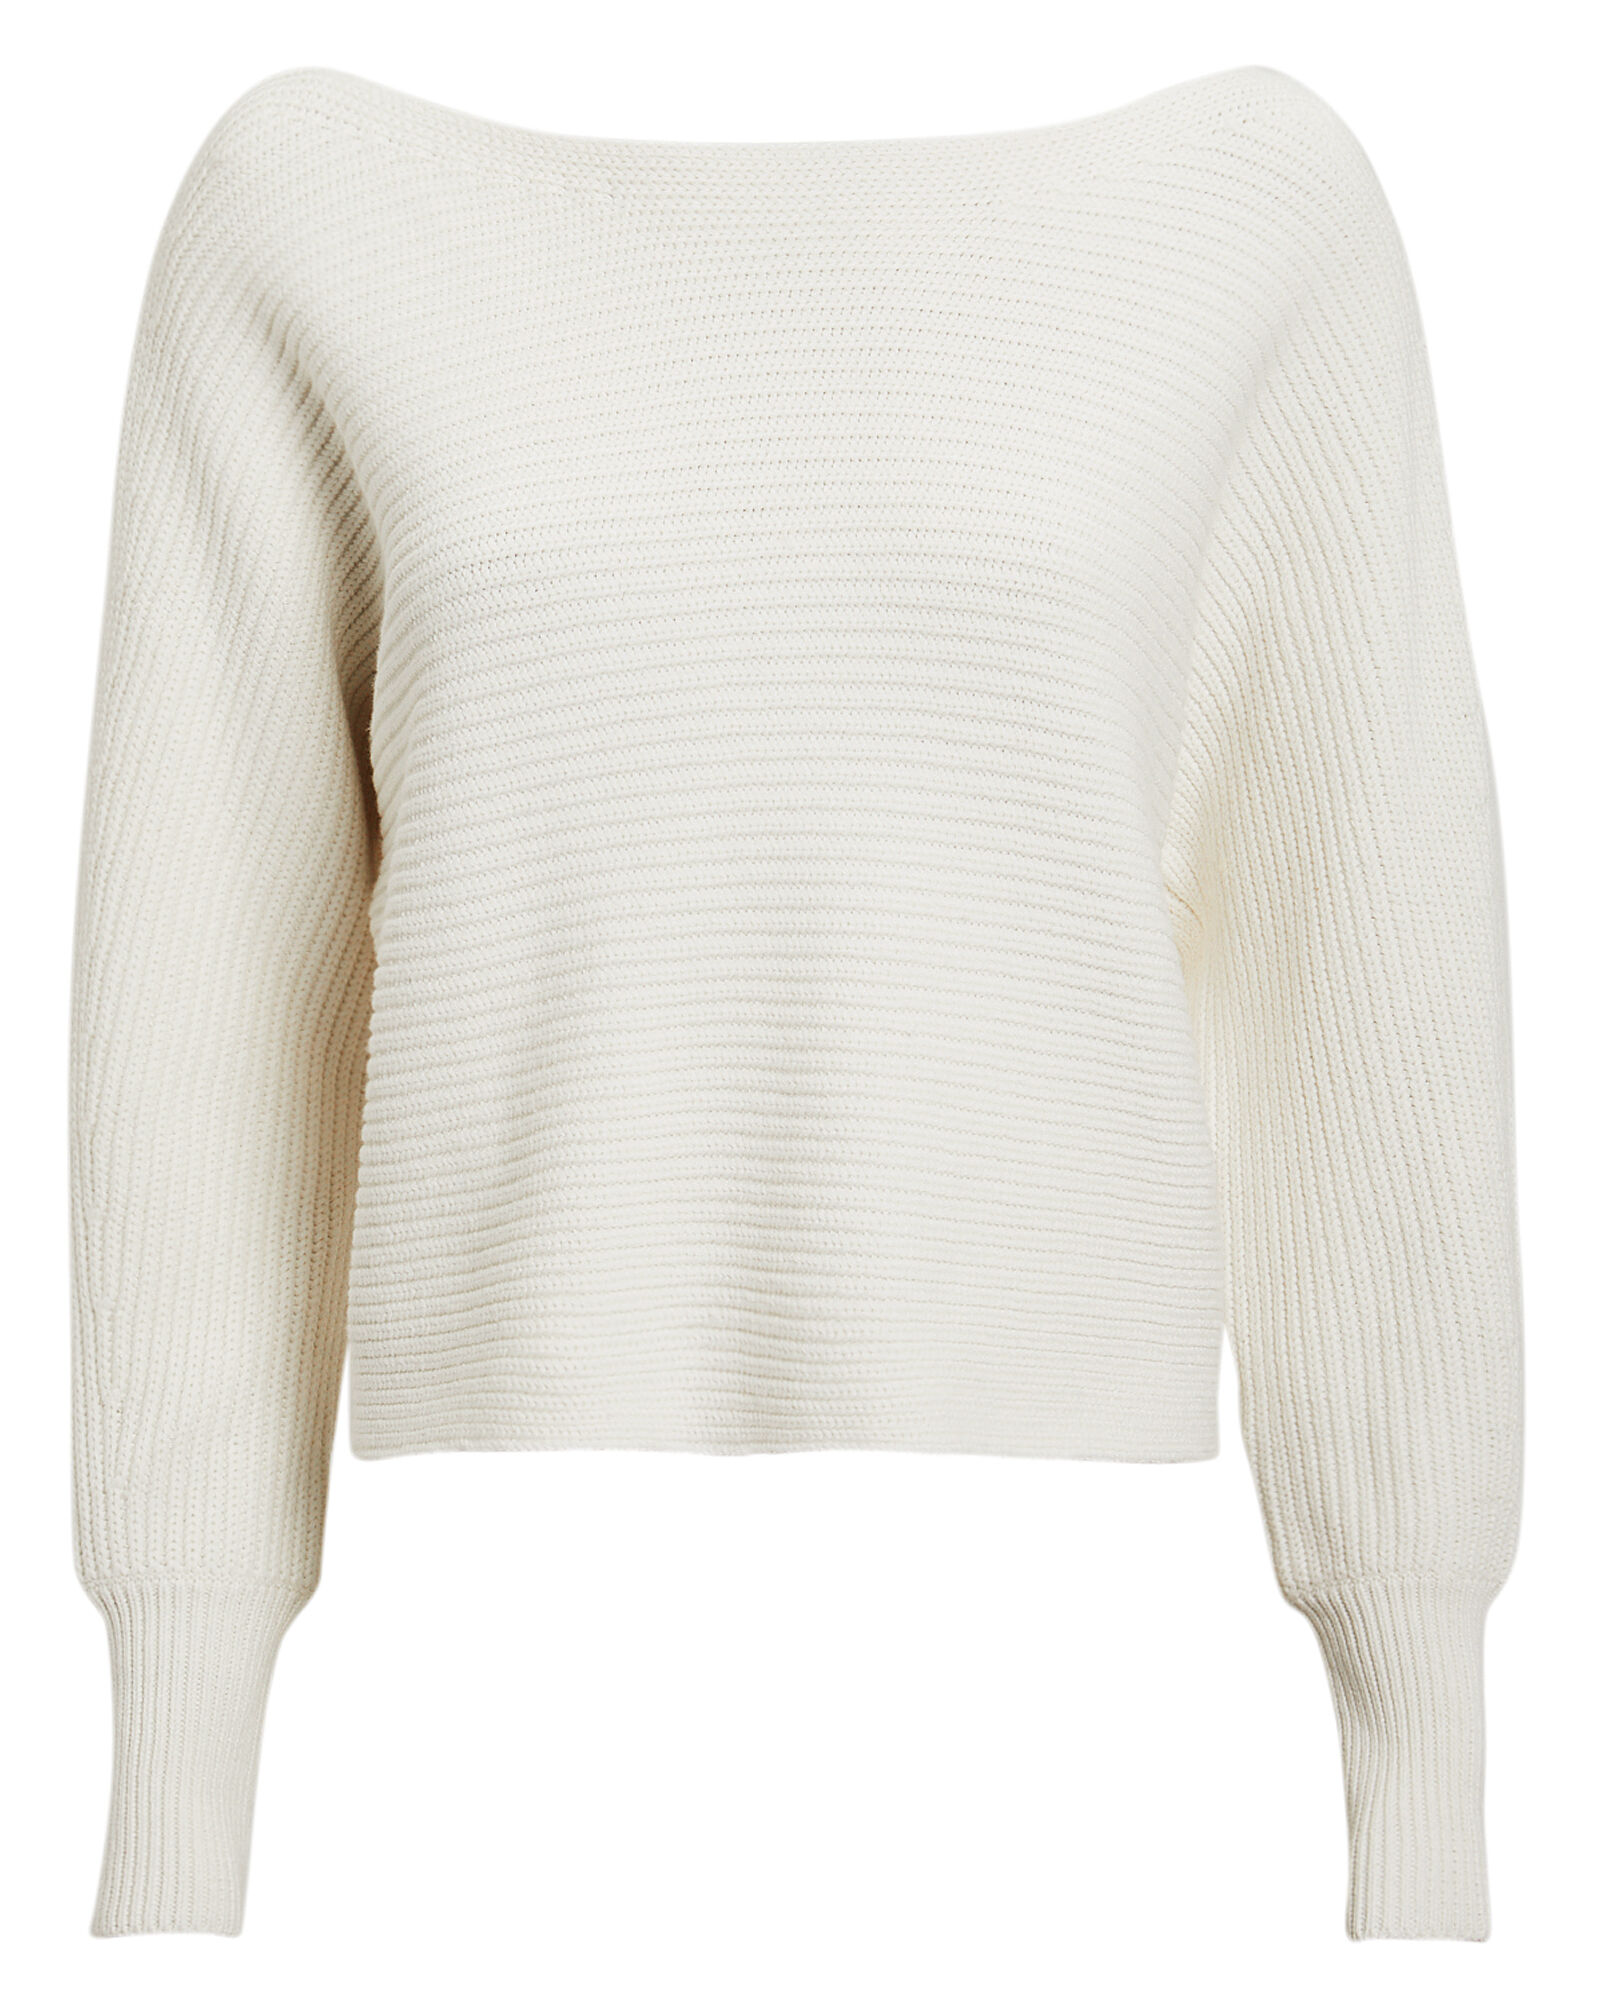 Luna Rib Knit Sweater, IVORY, hi-res